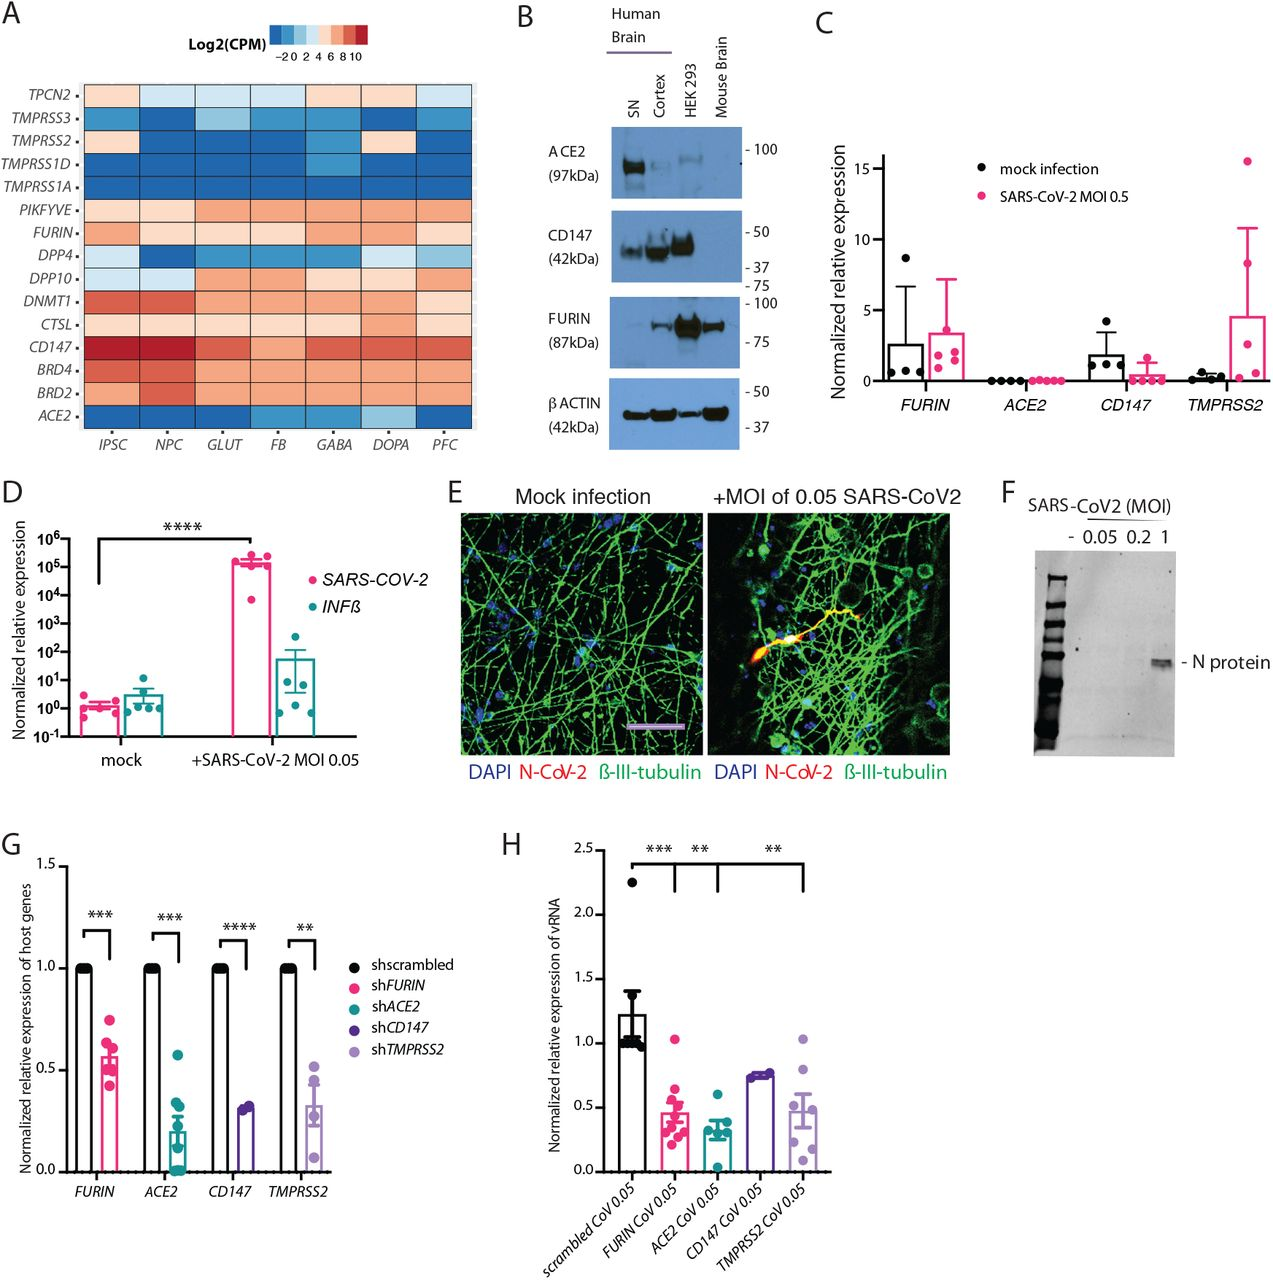 Infection of neurons by SARS-CoV-2 in vitro . A . Expression of host genes associated with SARS-CoV-2 infection ( Gordon et al., 2020 ; Ou et al., 2020 ; Wruck and Adjaye, 2020 ) examined by RNA-sequencing (Log 2 RNA-seq, CPM medians) of post-mortem human prefrontal cortex (PFC), human induced pluripotent stem cells (hiPSCs), neural progenitor cells (NPCs) and four hiPSC-derived neuronal cell types: induced glutamatergic (GLUT), differentiated forebrain (FB) populations (comprised of glutamatergic neurons, GABAergic neurons and astrocytes), induced GABAergic (GABA) and induced dopaminergic (DOPA). B . Immunoblot showing ACE2, FURIN and CD147 protein in post-mortem human adult substantia nigra (SN) and PFC. C . Baseline host gene expression in d21 NGN2 -induced glutamatergic neurons, uninfected or infected with SARS-CoV-2 (MOI 0.5), normalized relative to alveolospheres, to ensure comparability across cell types. D . qPCR analysis of relative change in subgenomic vRNA N transcript and Interferon β (IFNβ) in mock and SARS-CoV-2 infected d21 NGN2 -induced glutamatergic neurons (MOI of 0.05, 24 hours). E . Representative immunostaining for SARS-CoV-2 nucleocapsid (N) protein (red), neuronal marker β-III-tubulin (green) and DAPI (blue) in d7 NGN2 -induced glutamatergic neurons infected with a SARS-CoV-2 (MOI of 0.05, 48 hours). Scale bar: 50μm F . Immunoblot against SARS-CoV-2 nucleocapsid (N) protein shows replication in NGN2 -induced glutamatergic neurons at a MOI of 1 after 24 hours. G . shRNA knock down of FURIN, ACE2, CD147 , and TMPRSS2 host genes, normalized to 18S levels and scrambled, in d7 NGN2 -induced glutamatergic neurons. T-test, **p